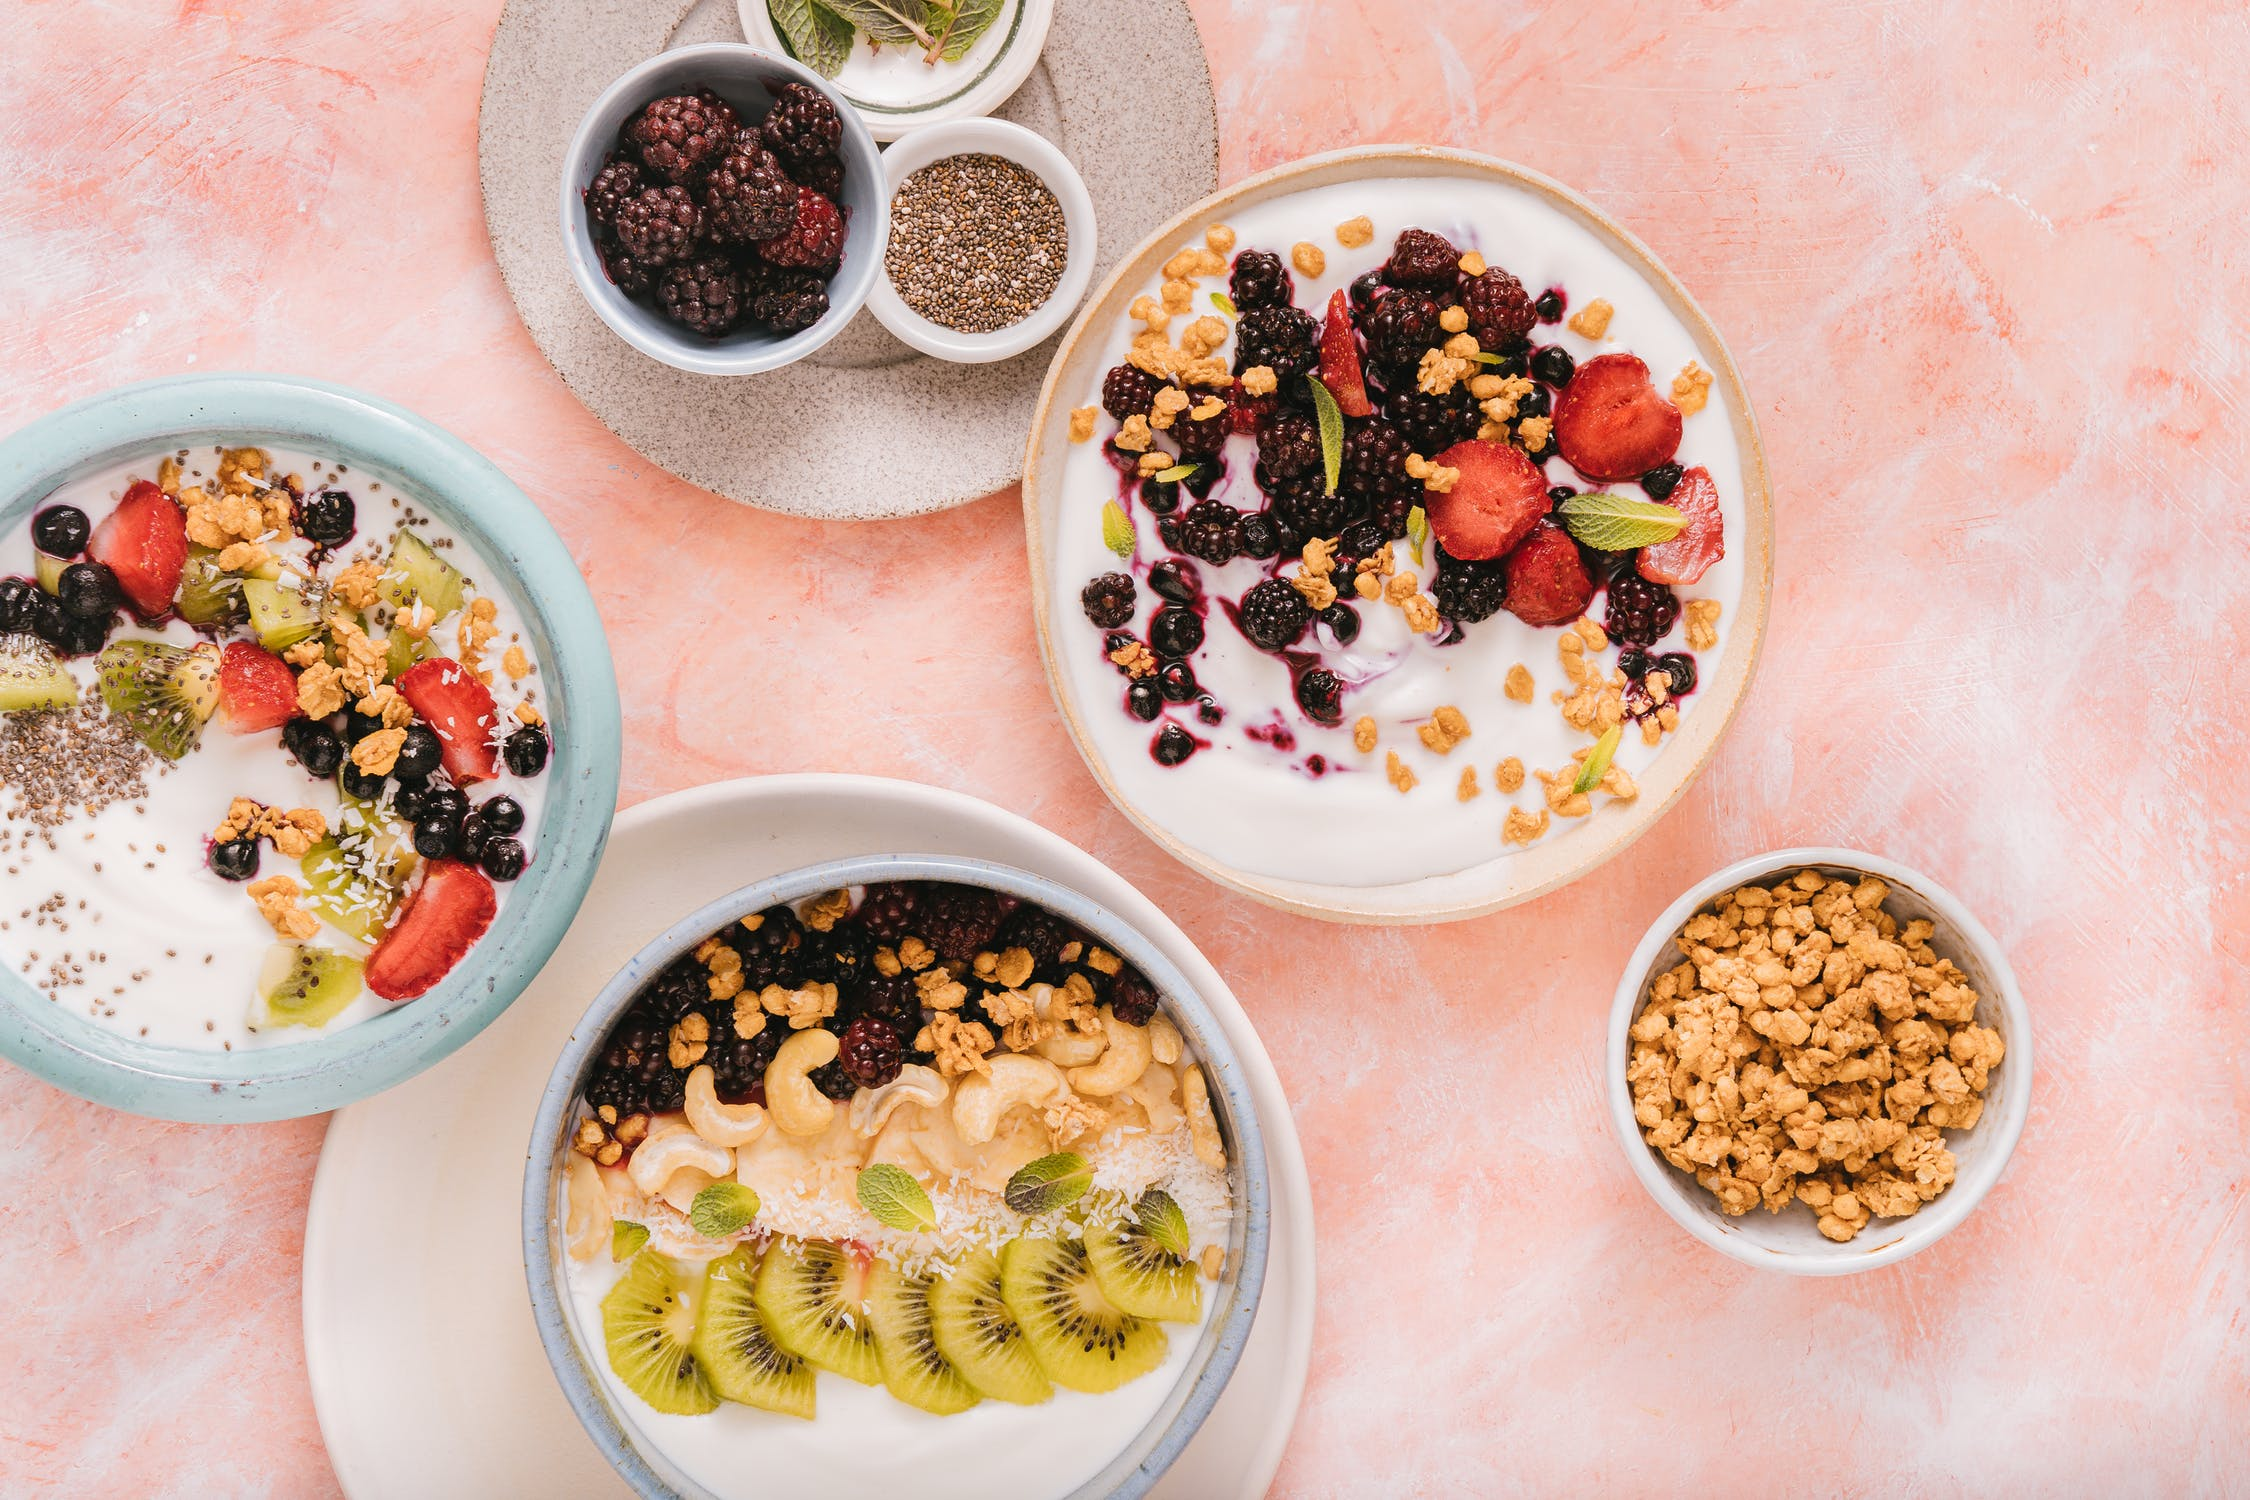 Skyr with toppings